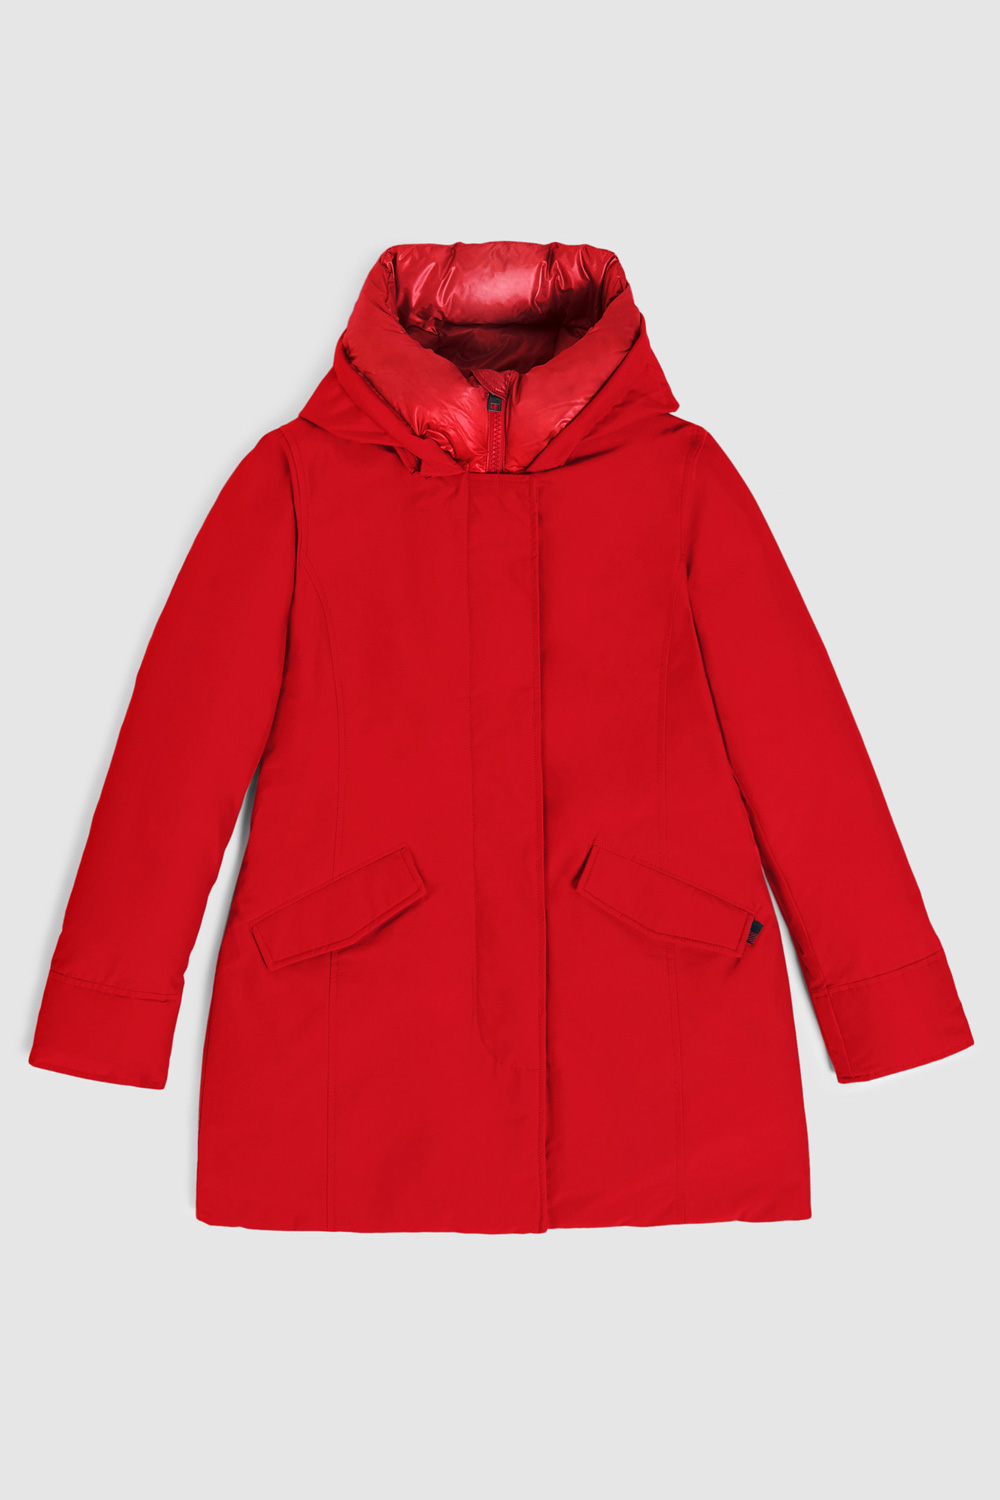 Woolrich Arctic Parka Nf Rosso Scarlatto